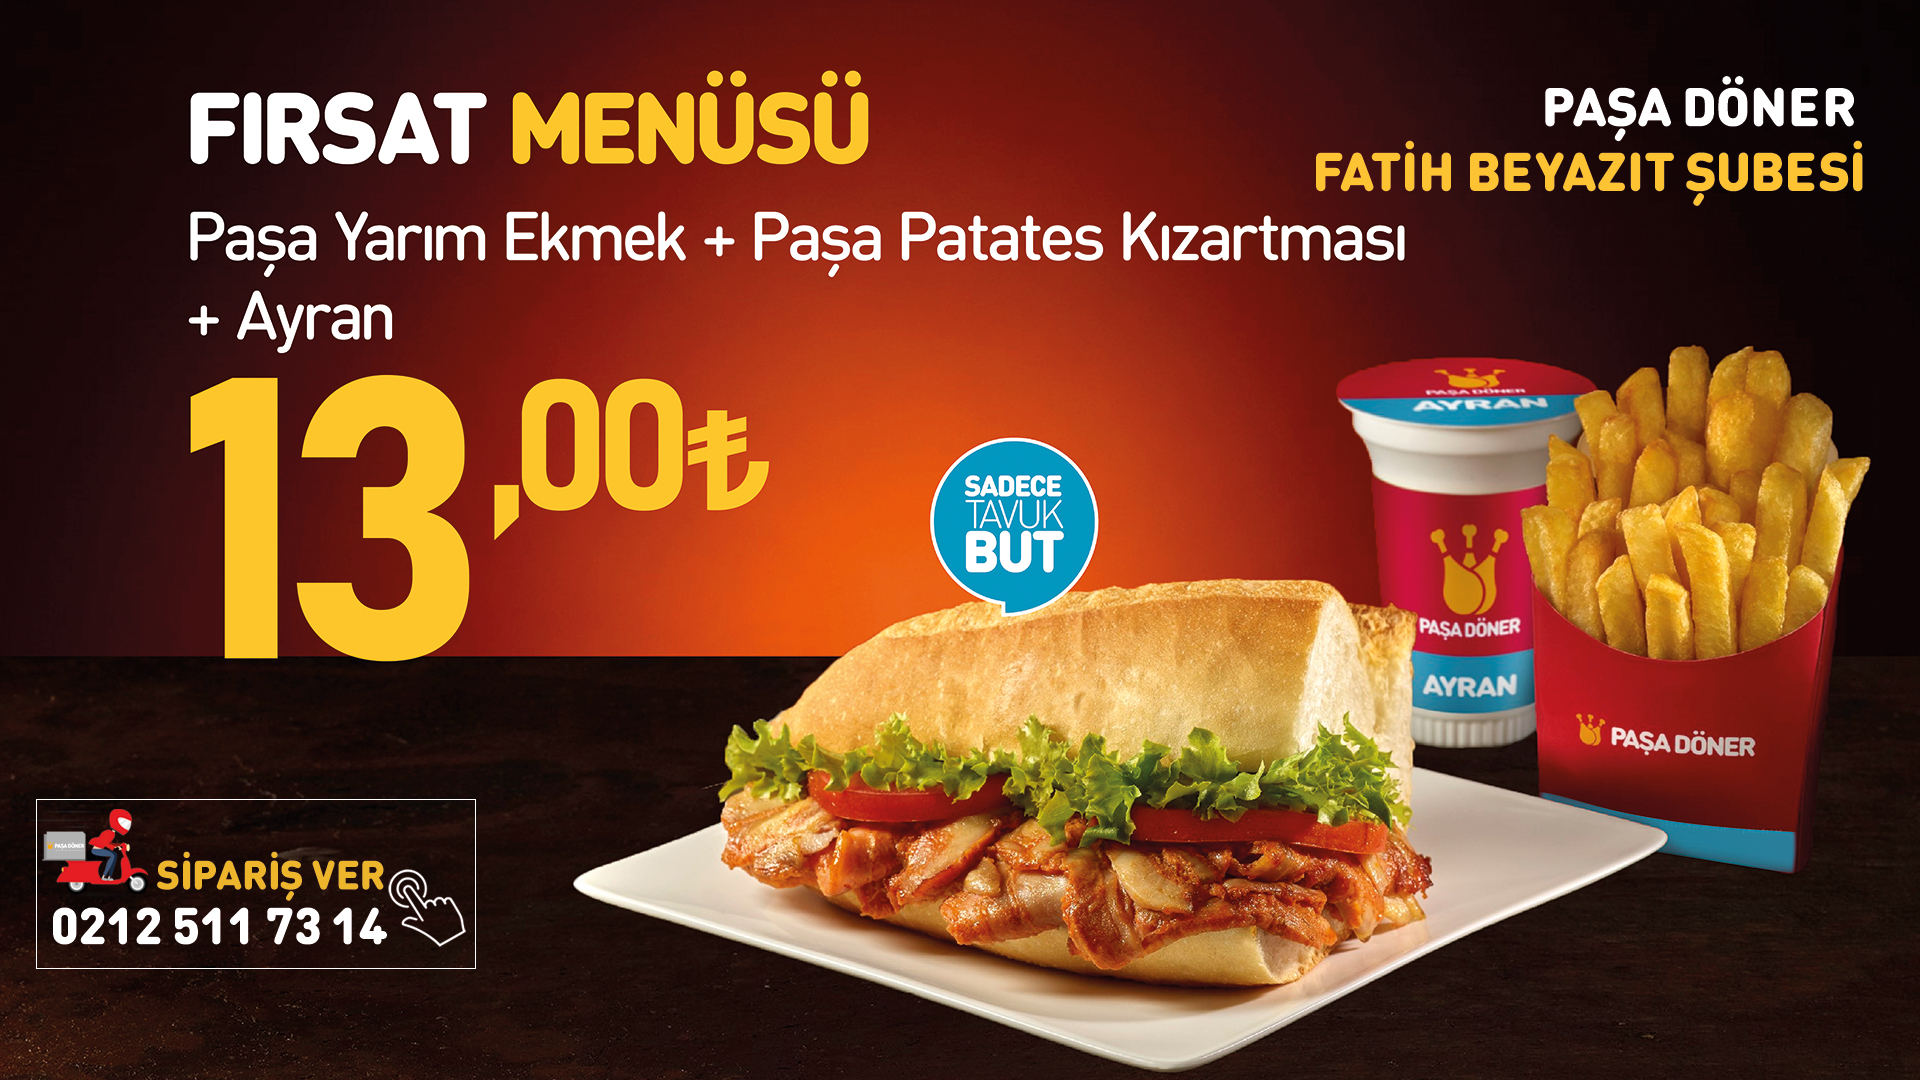 firsat-menu-beyazit